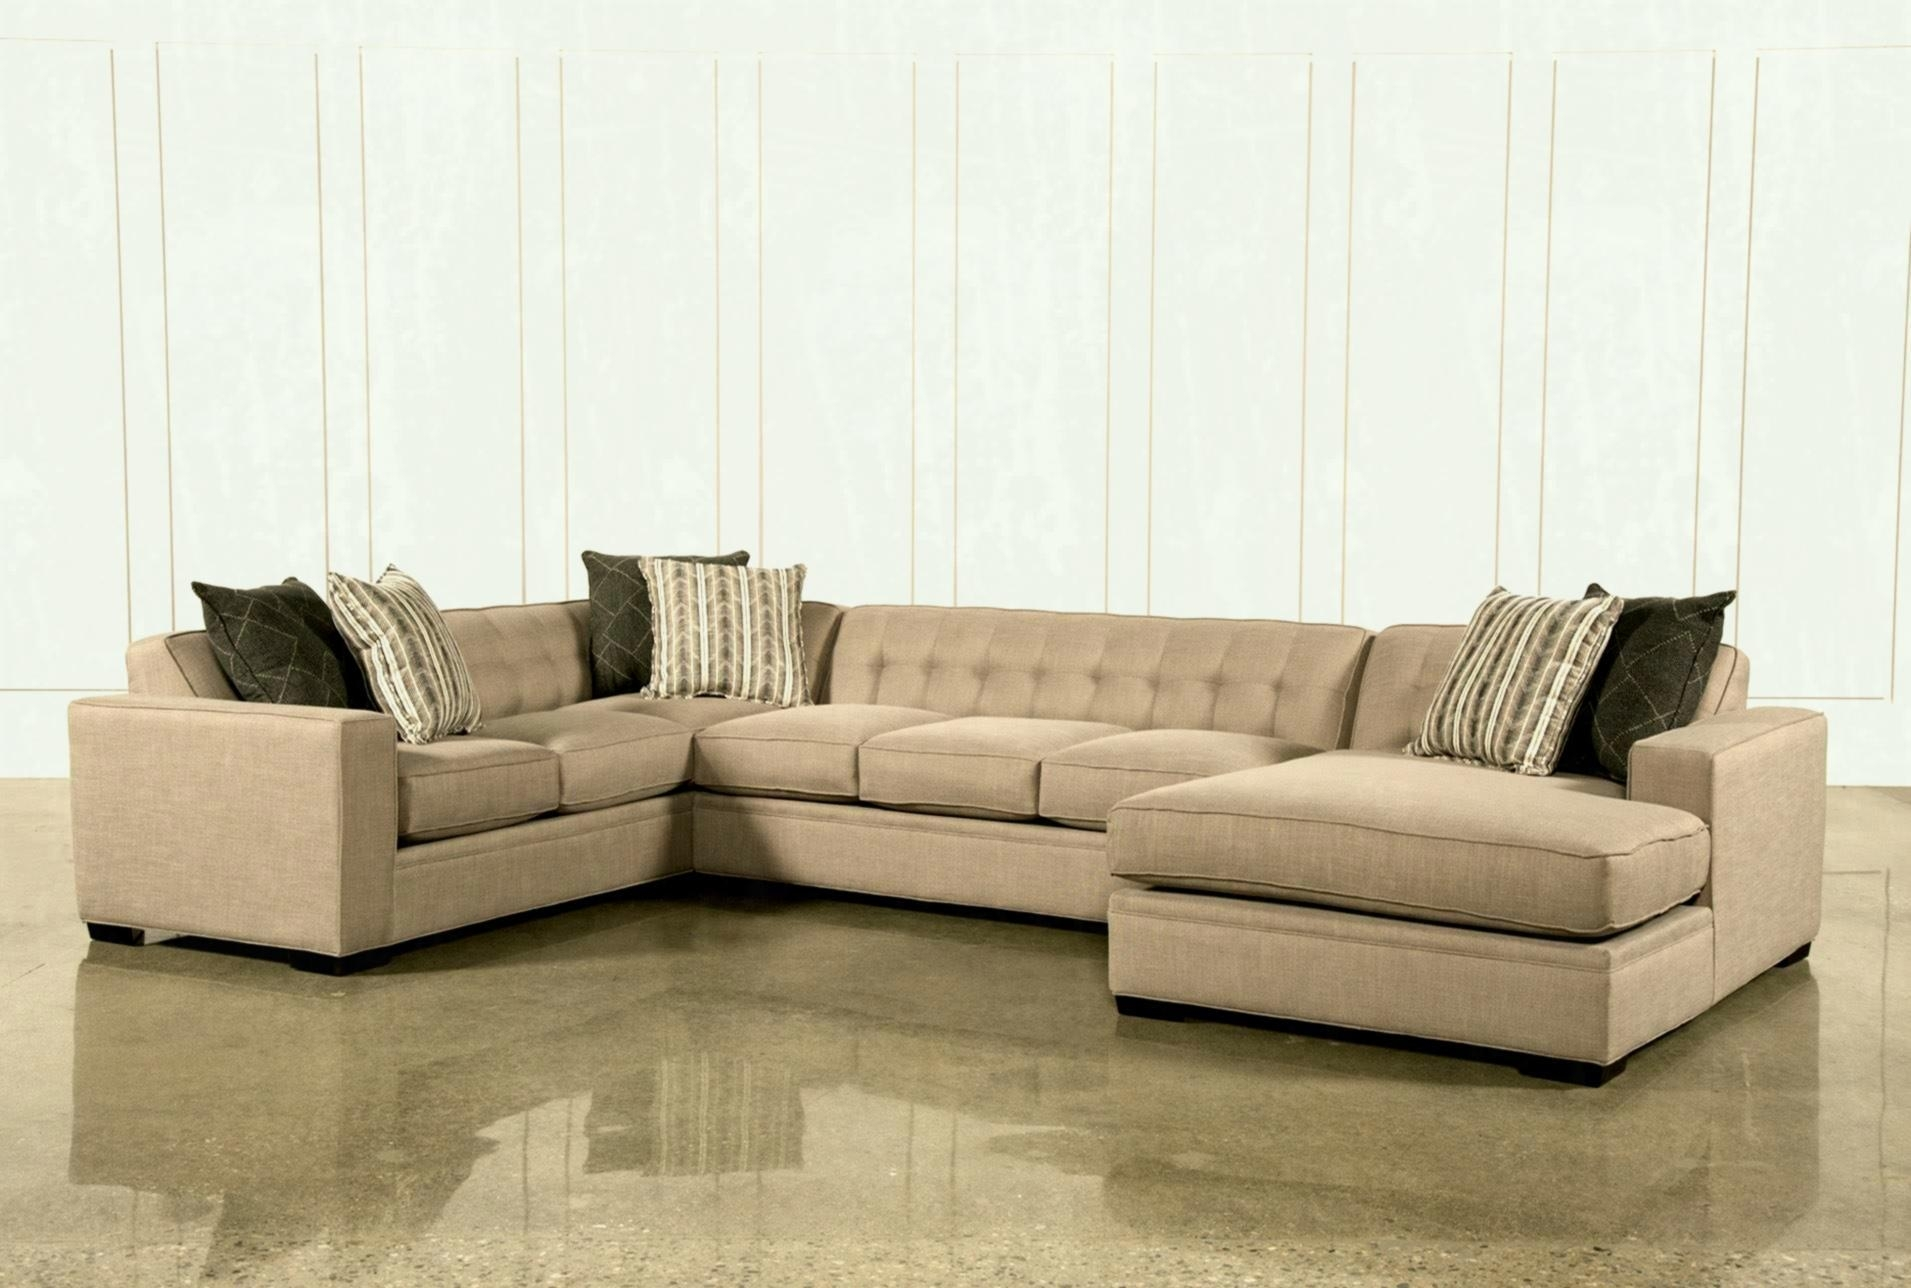 Living Spaces Sectional - Tidex inside Cosmos Grey 2 Piece Sectionals With Raf Chaise (Image 19 of 30)